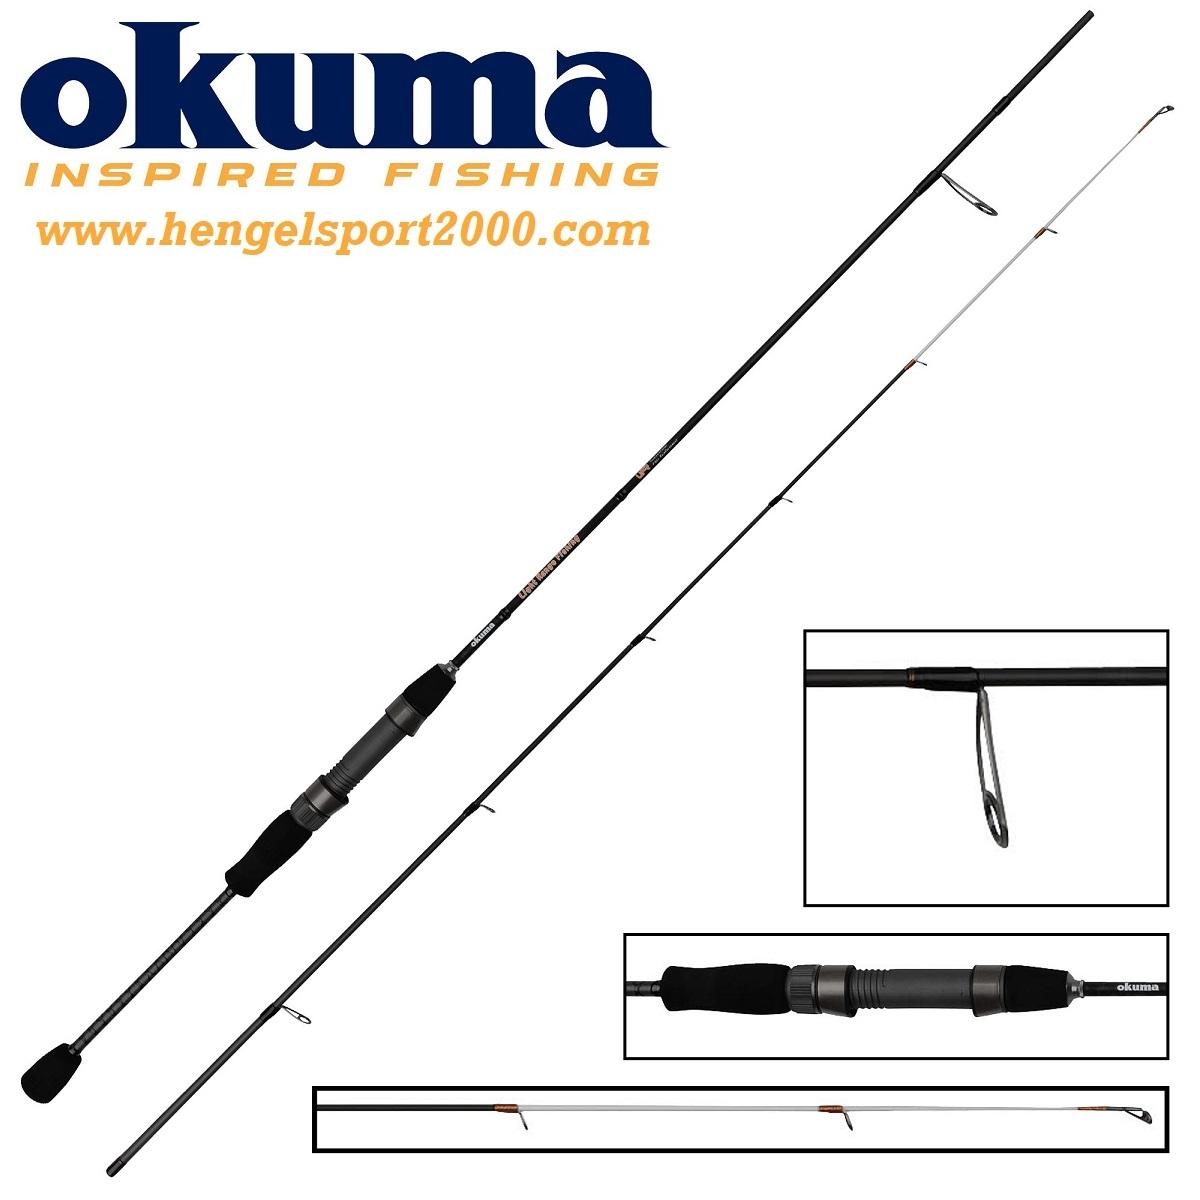 Okuma Light Range Fishing Spin 185 cm 1 - 7 gram